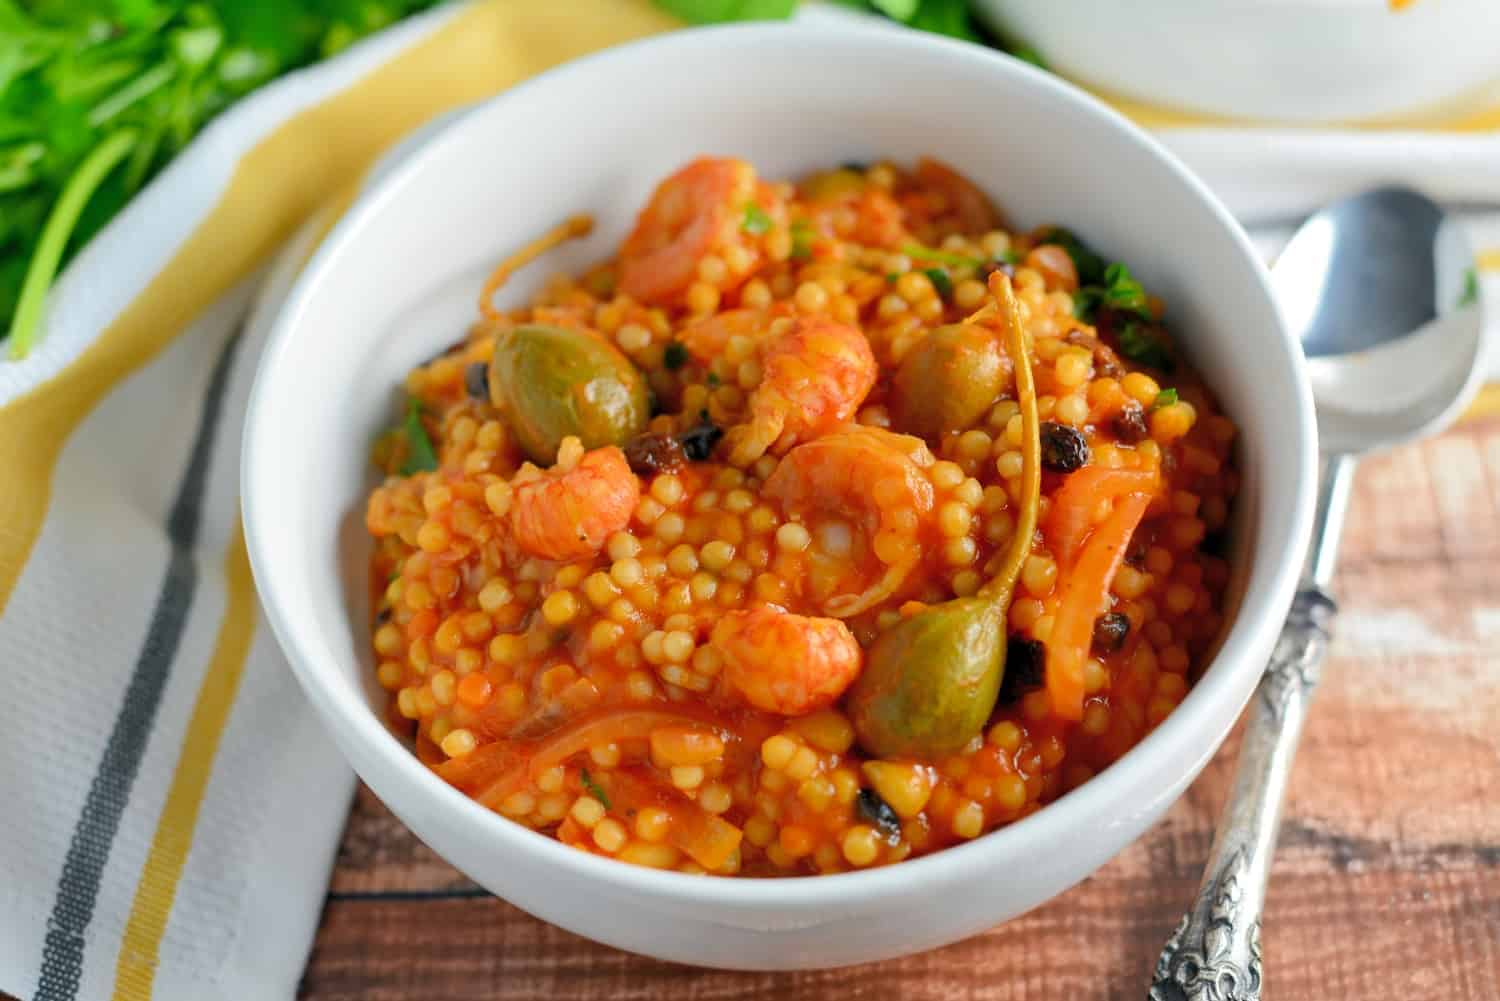 Italian Seafood Stew is a quick seafood recipe using couscous, tomatoes, currants and caper berries. This Italian stew comes together in just 20 minutes from start to finish! #italianseafoodstew #italianstew www.savoryexperiments.com